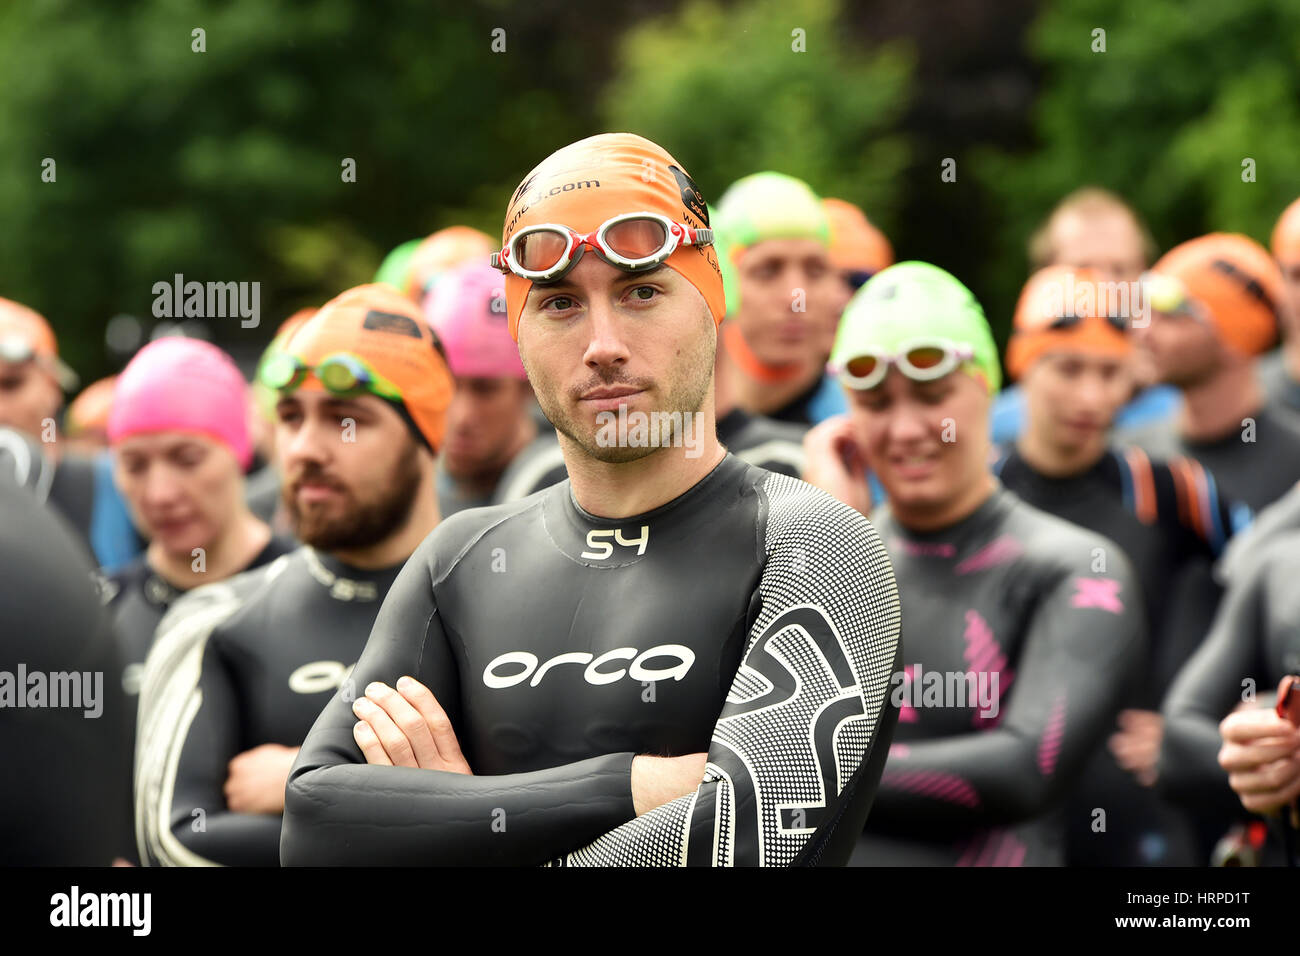 Swimmers gather for a briefing before starting the Ullswater Open Water race - Stock Image